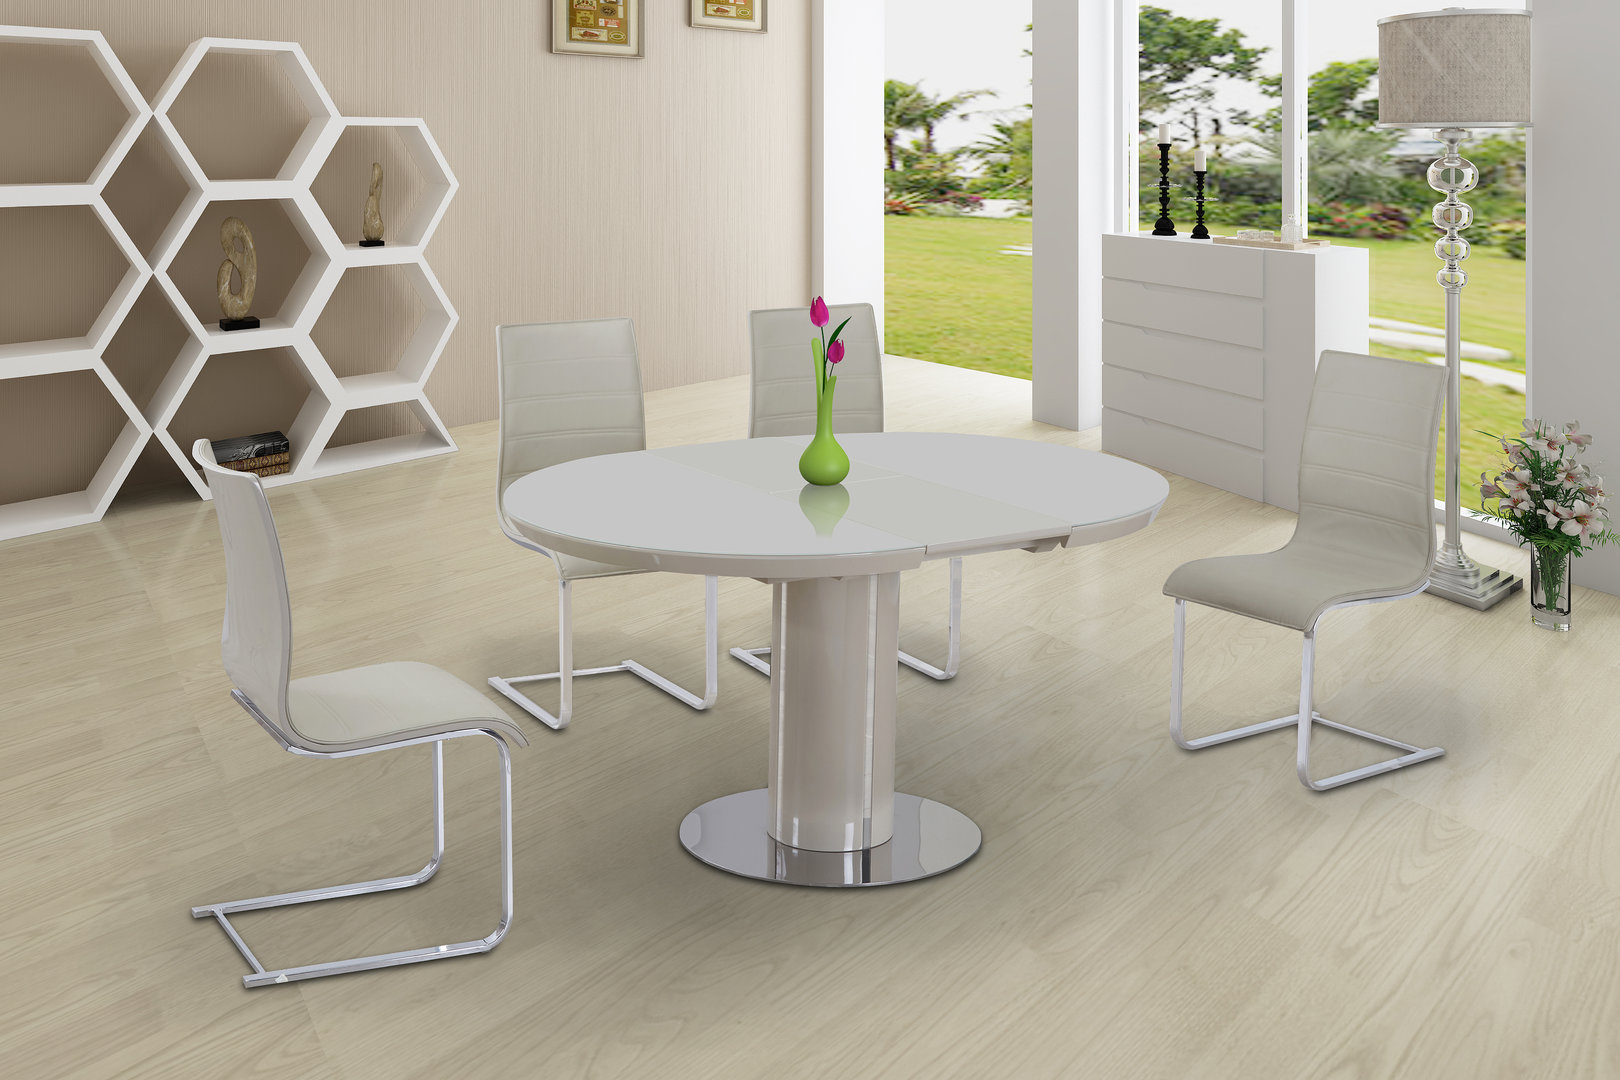 110cm Round Glass Dining Table Of Round Cream Glass High Gloss Dining Table 4 Chairs